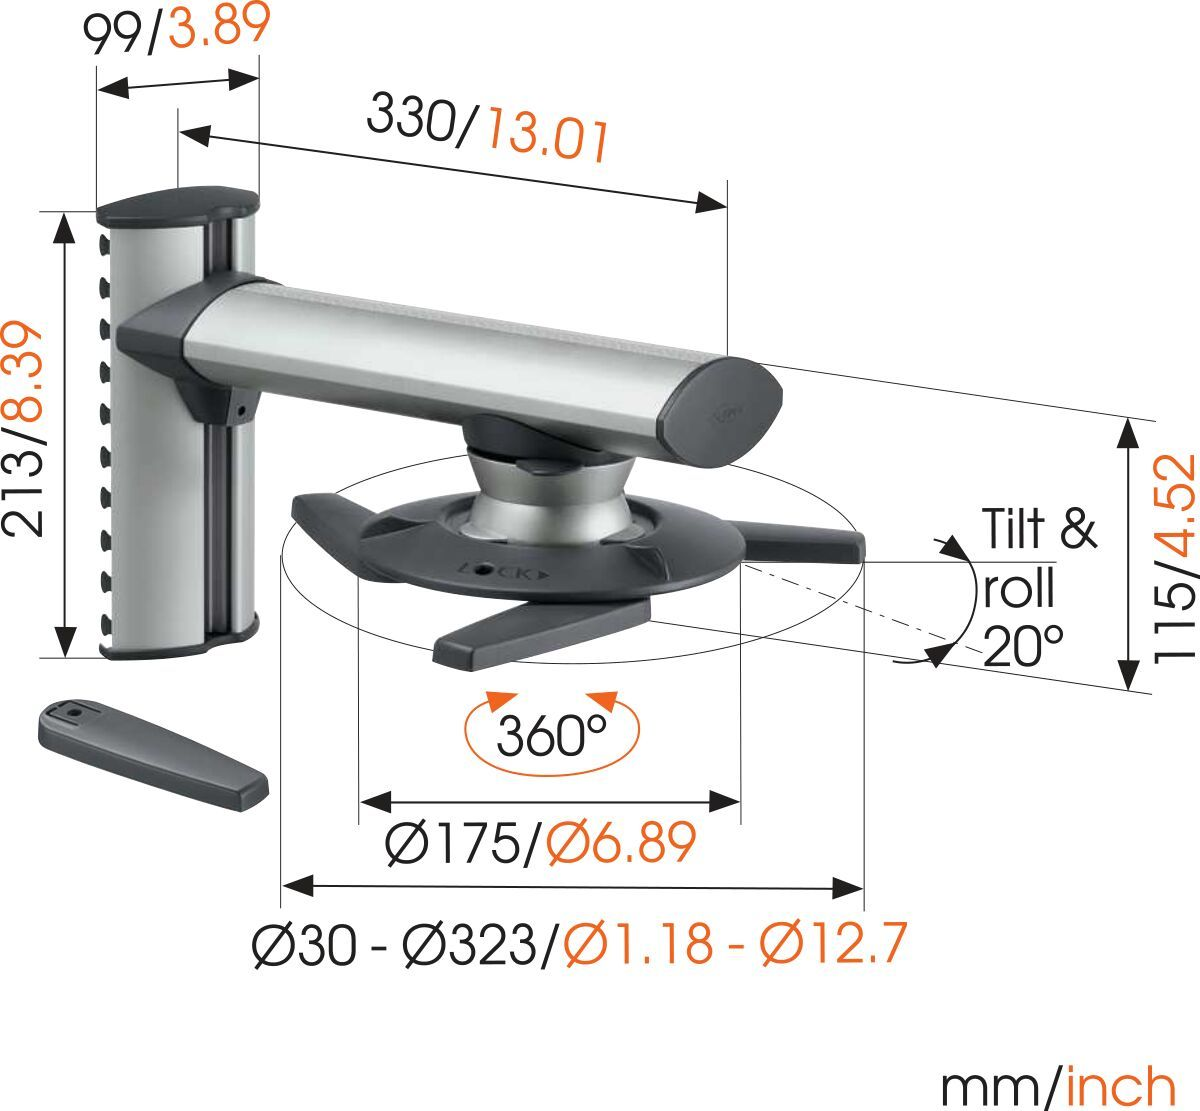 Vogel's EPW 6565 Projector Wall Mount - Max. weight load: 10 - Max. weight load: Dimensions